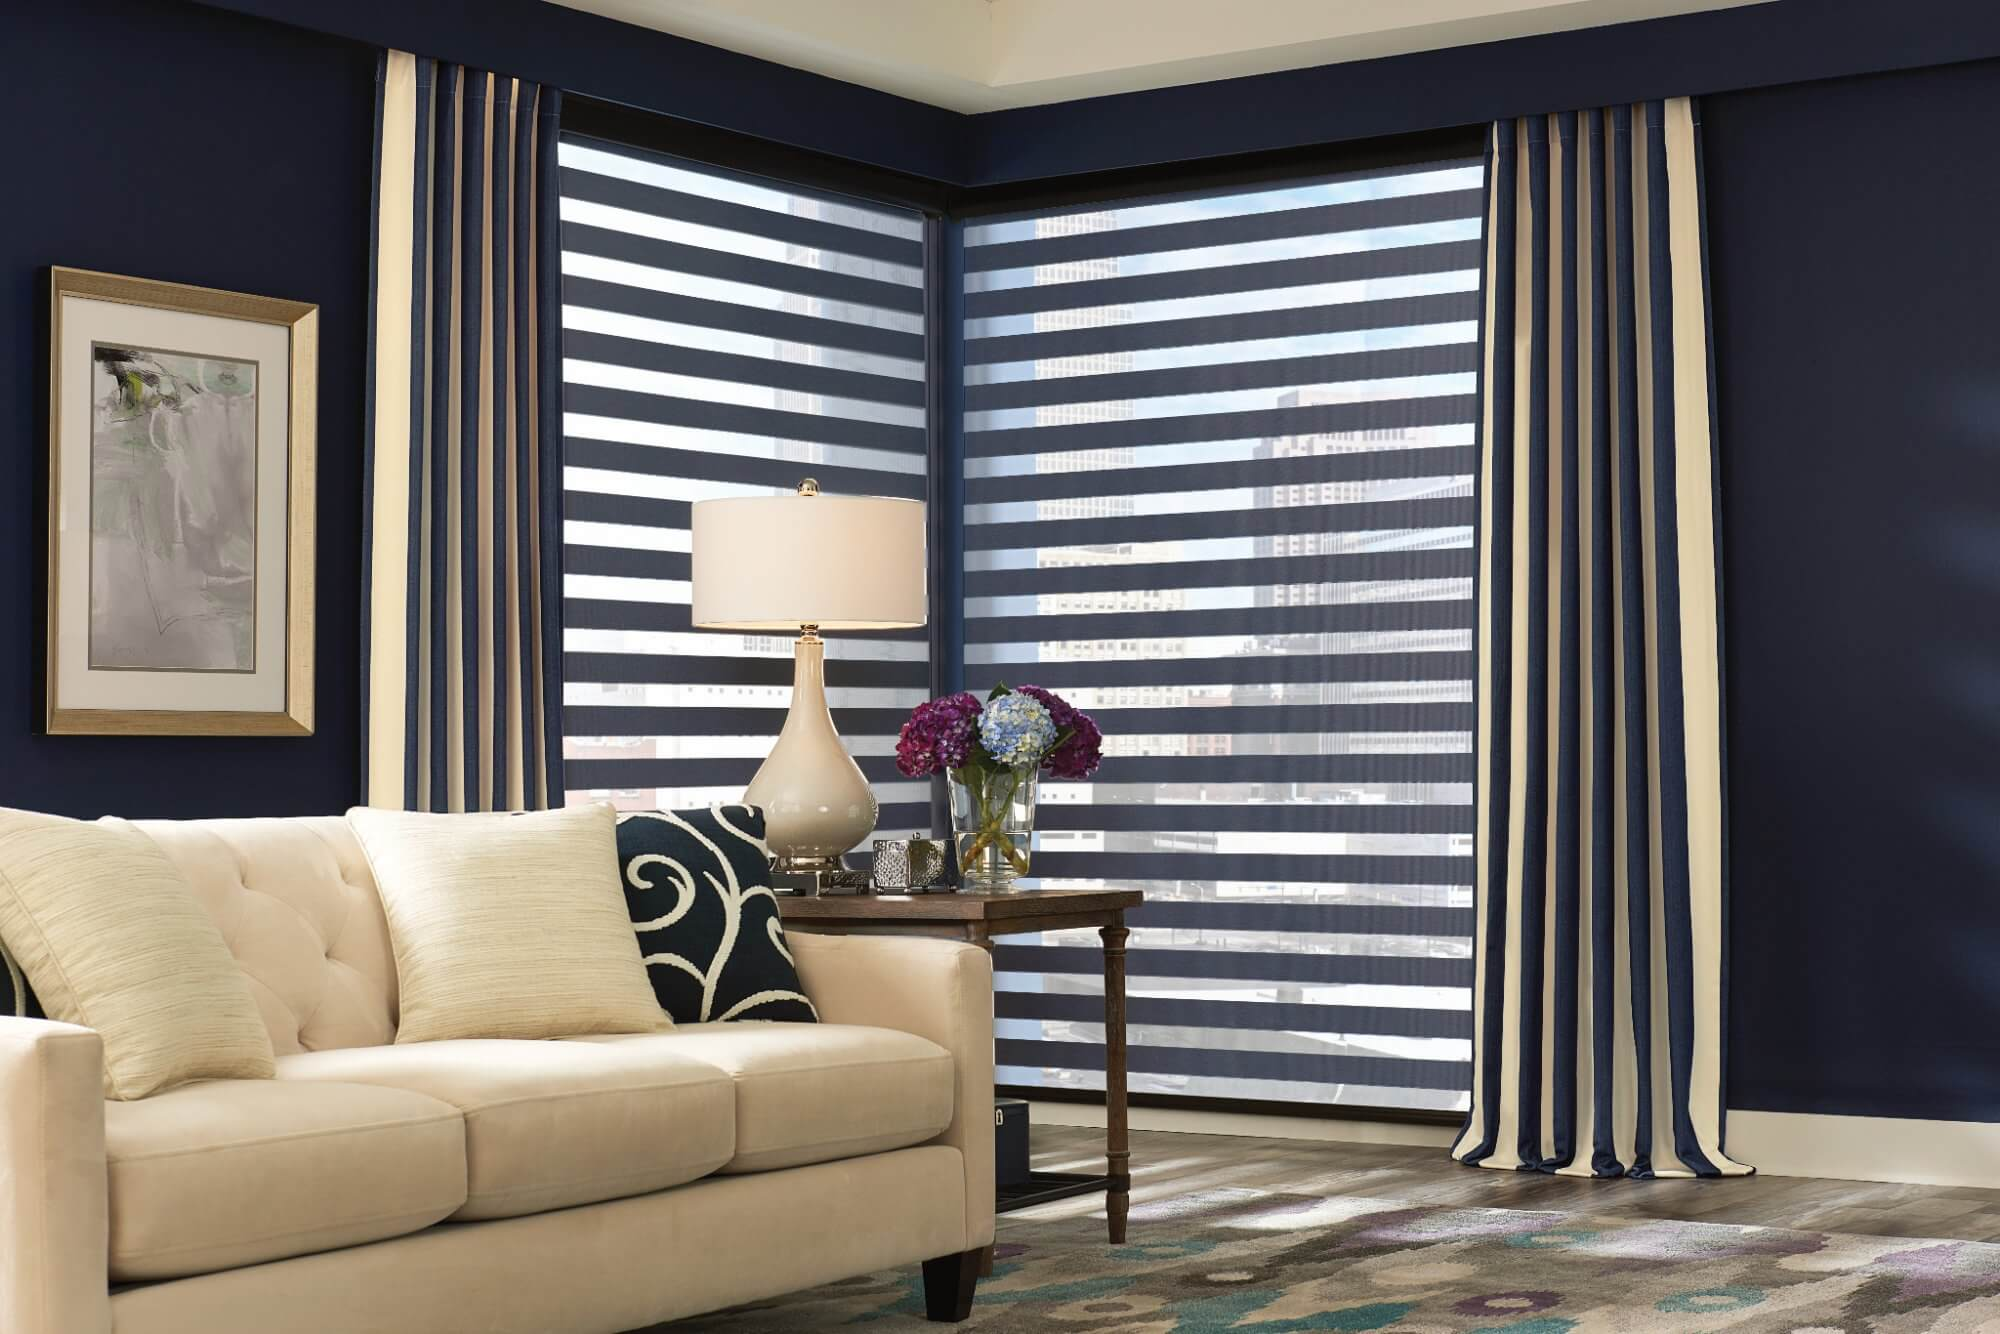 Transitional design styles are a combination of traditional and contemporary designs. Transitional window treatments will be understated but elegant.